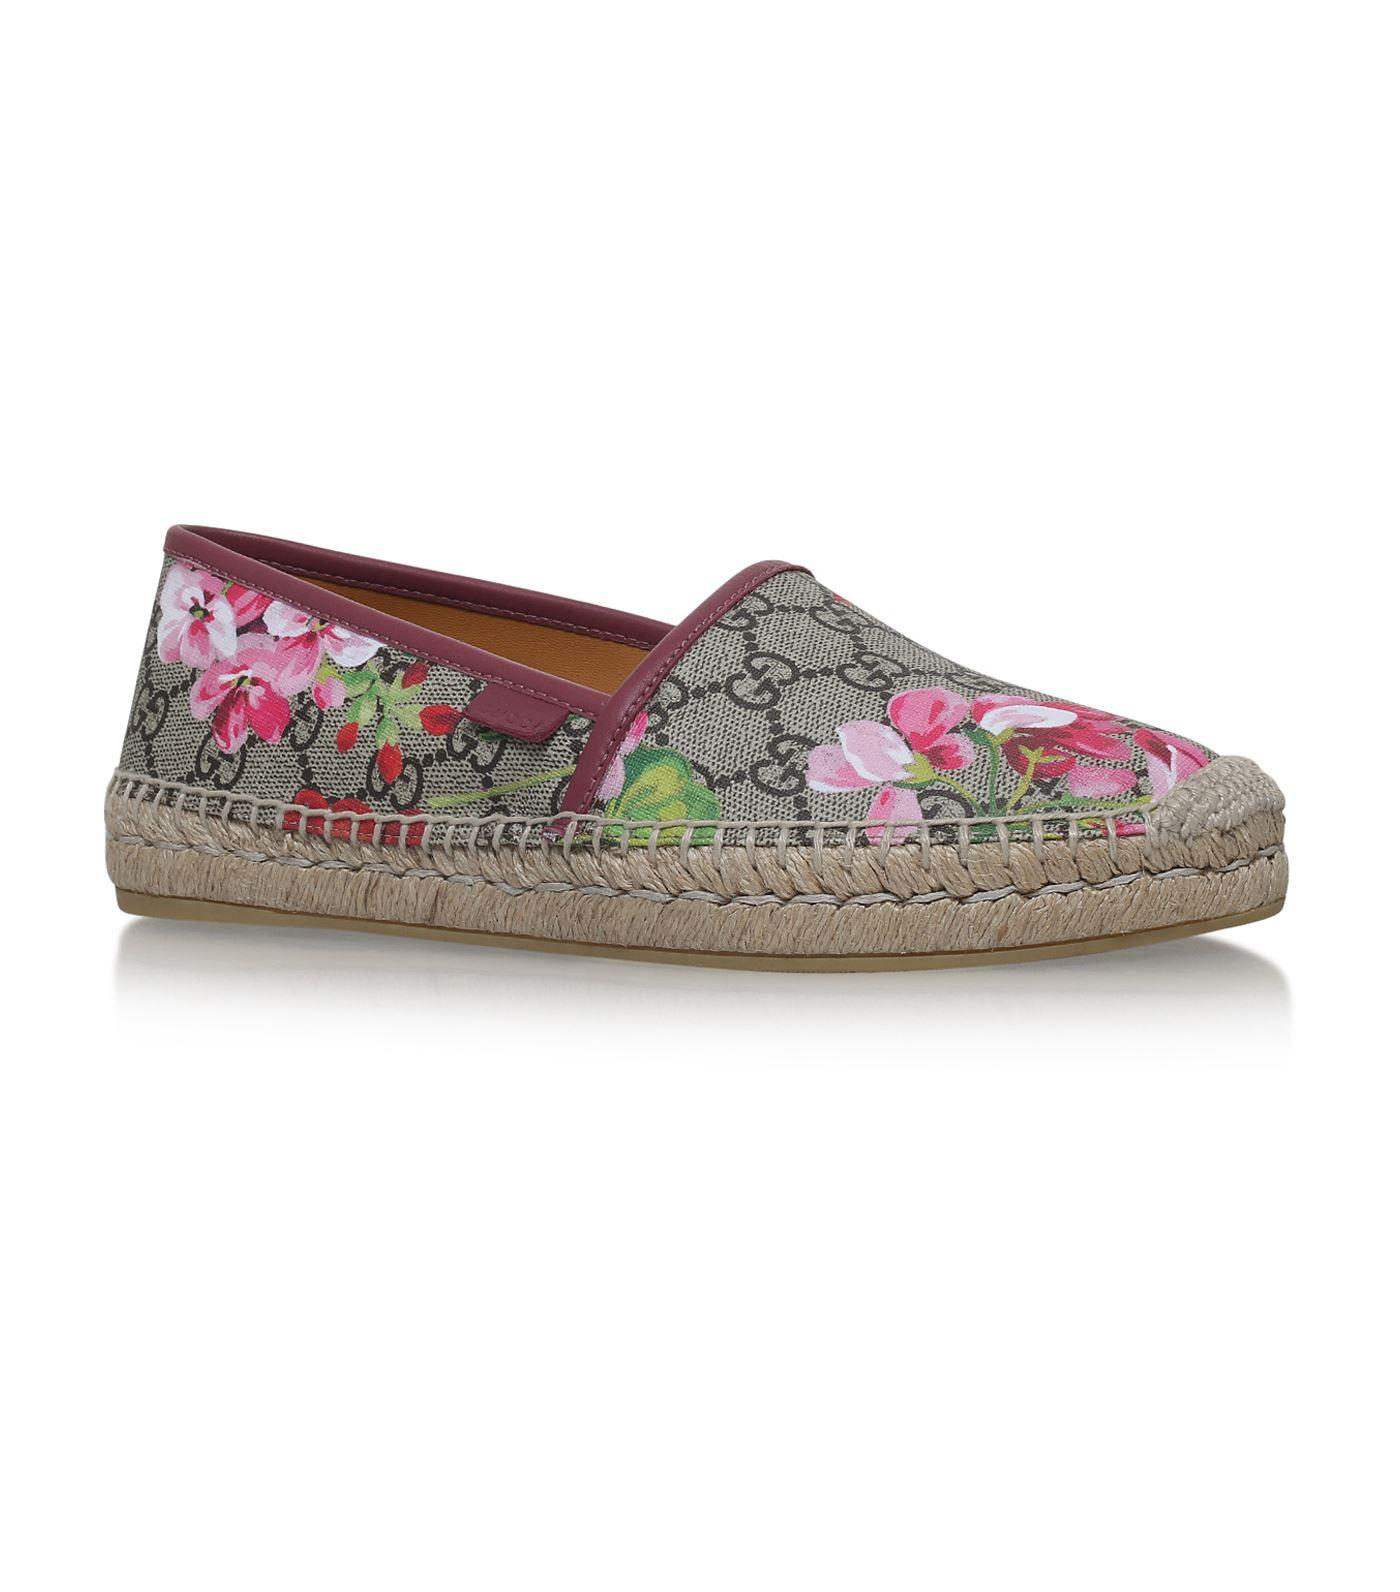 585c067fd72 Gucci Gg Blooms Supreme Espadrille Flats In Pink